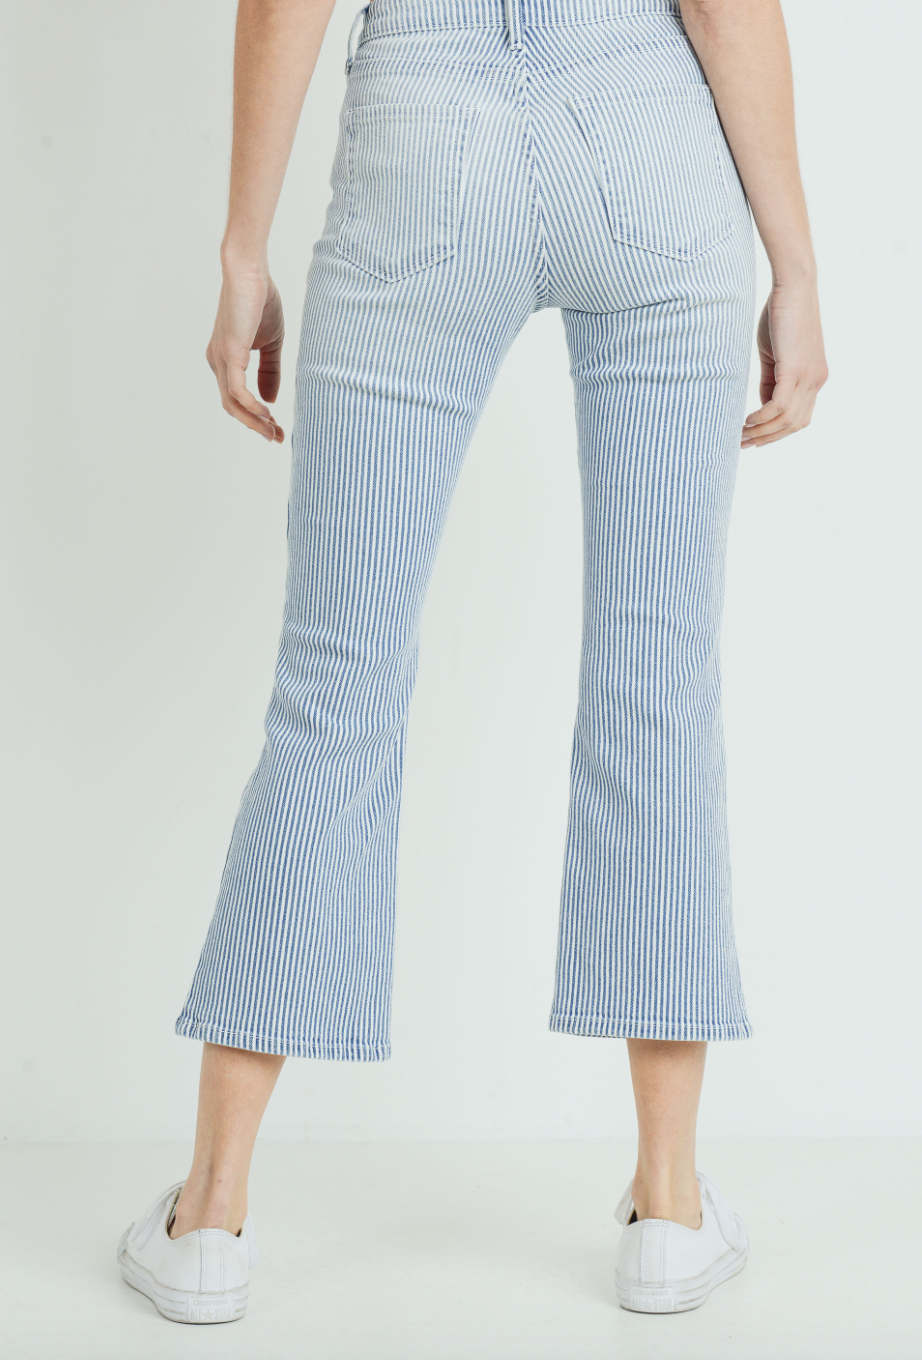 JBD Stripe You're Out Jeans 294